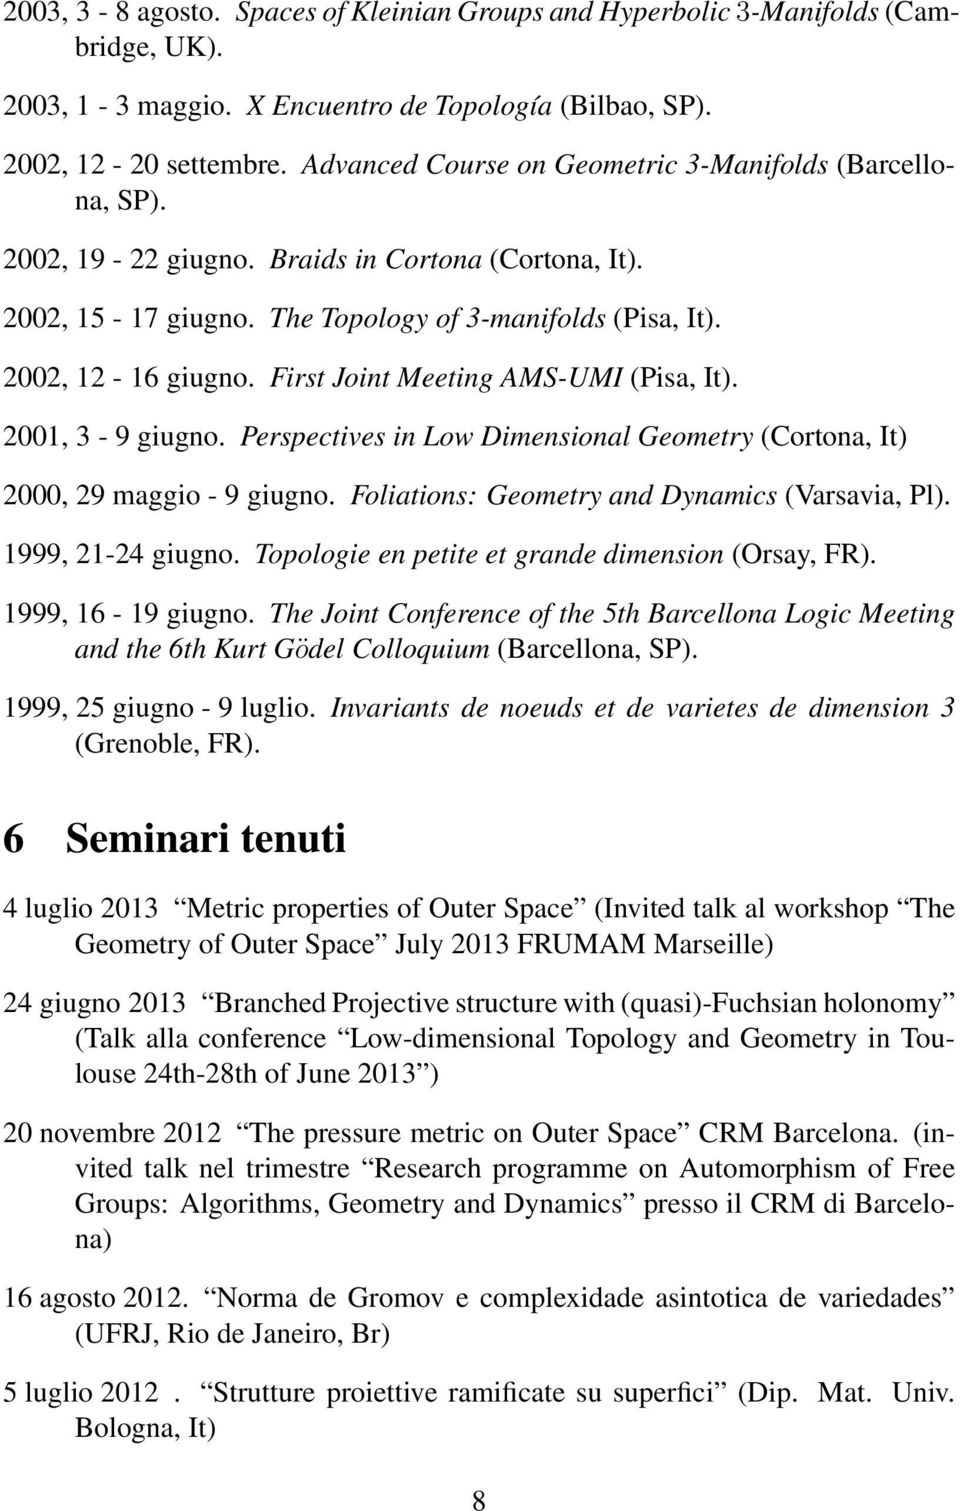 First Joint Meeting AMS-UMI (Pisa, It). 2001, 3-9 giugno. Perspectives in Low Dimensional Geometry (Cortona, It) 2000, 29 maggio - 9 giugno. Foliations: Geometry and Dynamics (Varsavia, Pl).